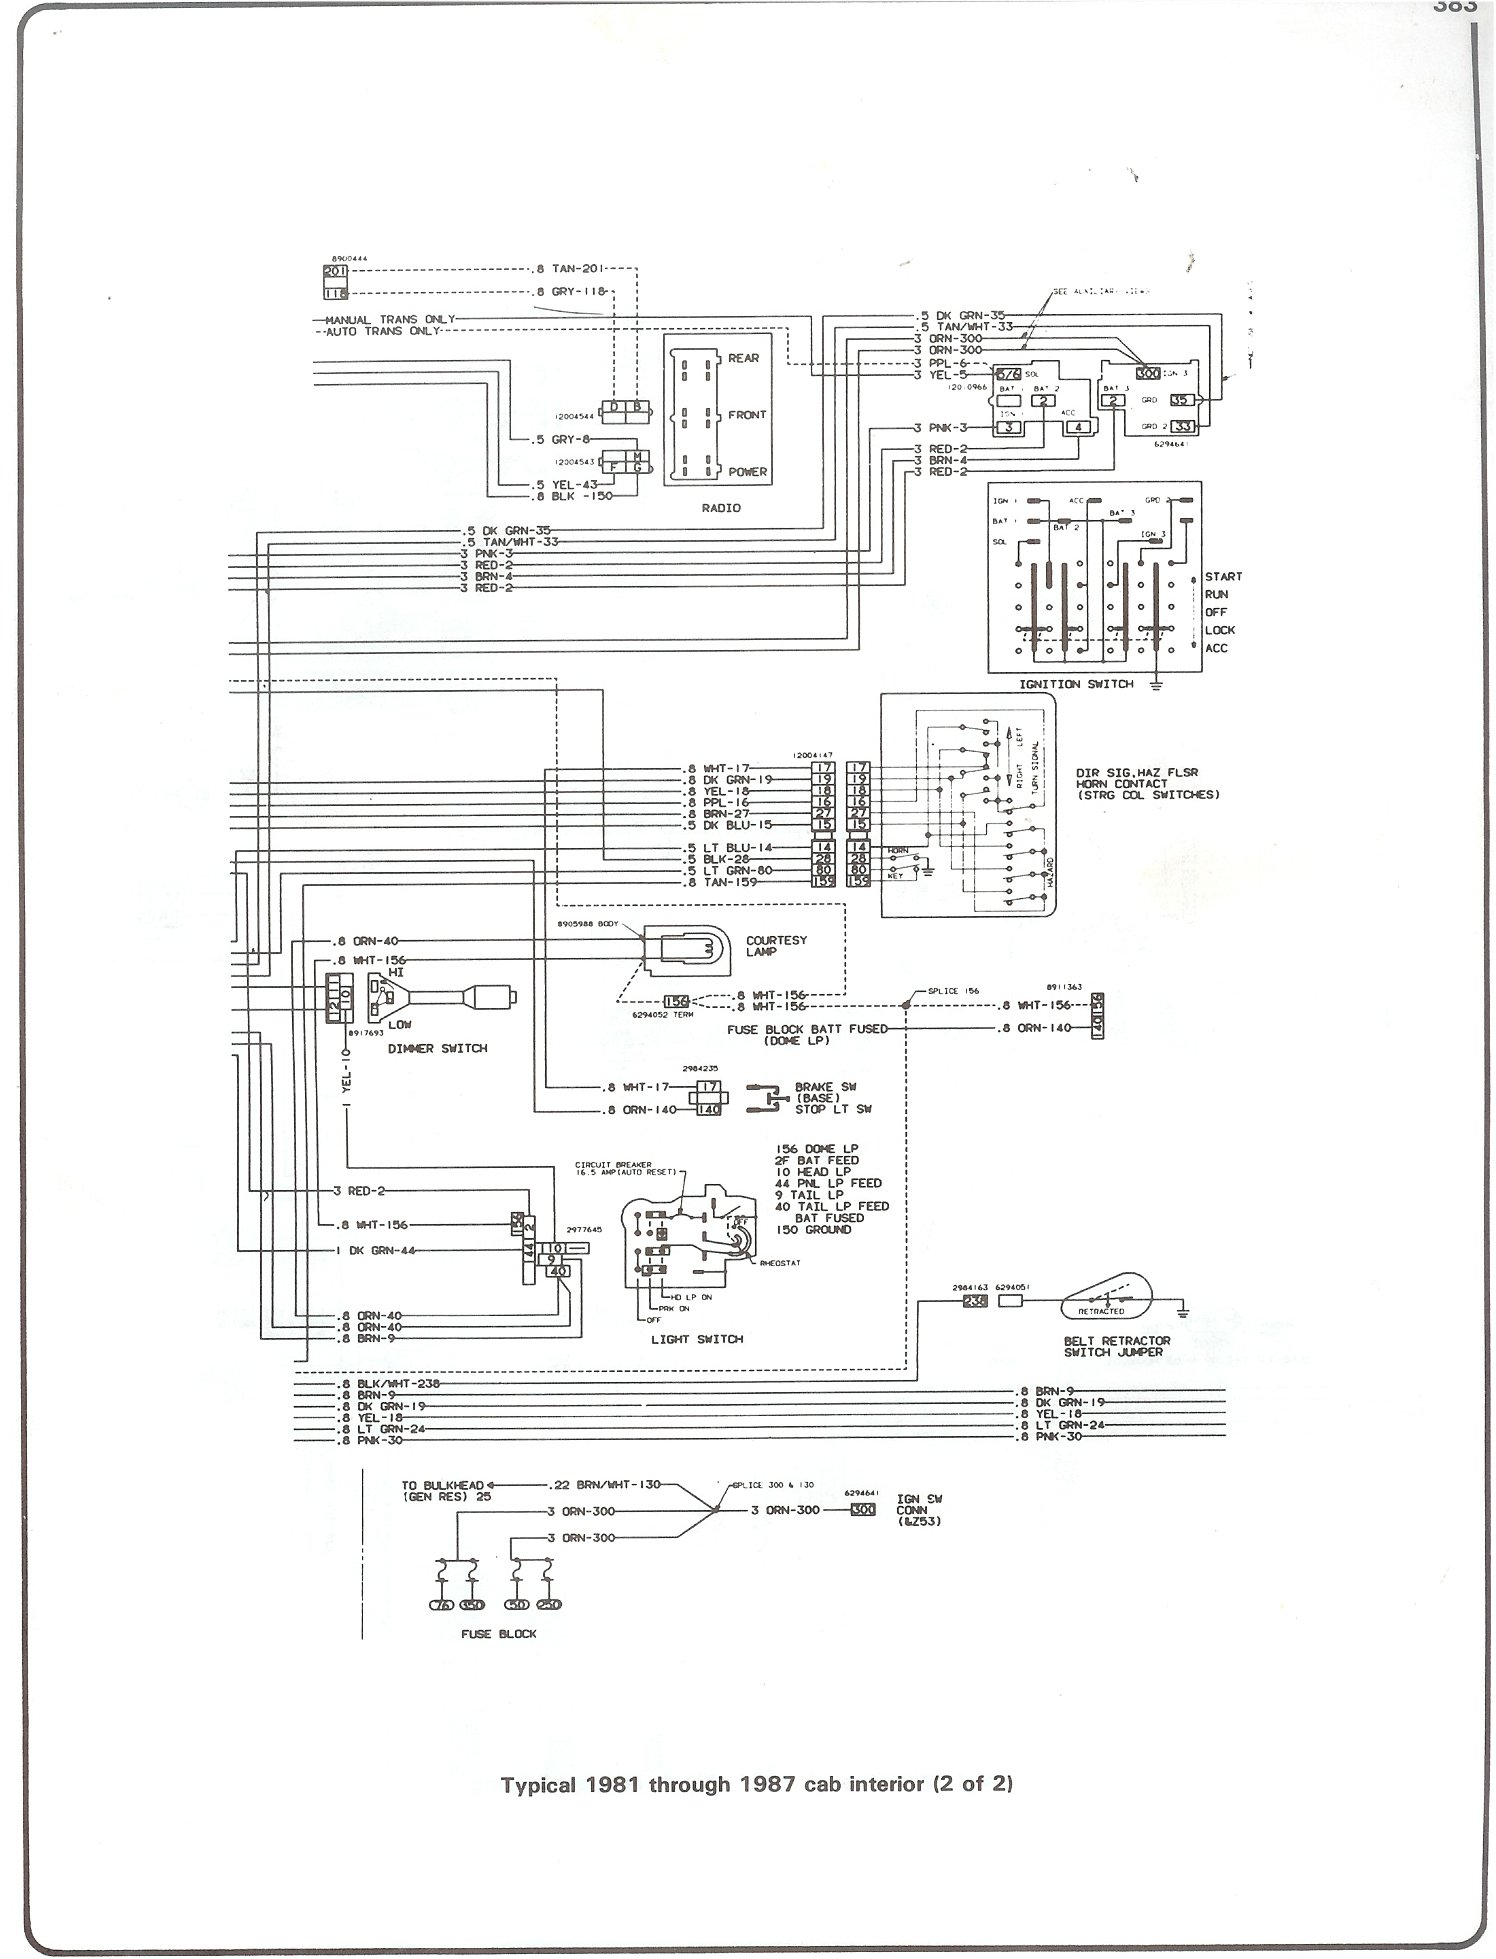 1970 chevrolet c10 wiring diagram of the fuse box complete 73 87    wiring    diagrams  complete 73 87    wiring    diagrams